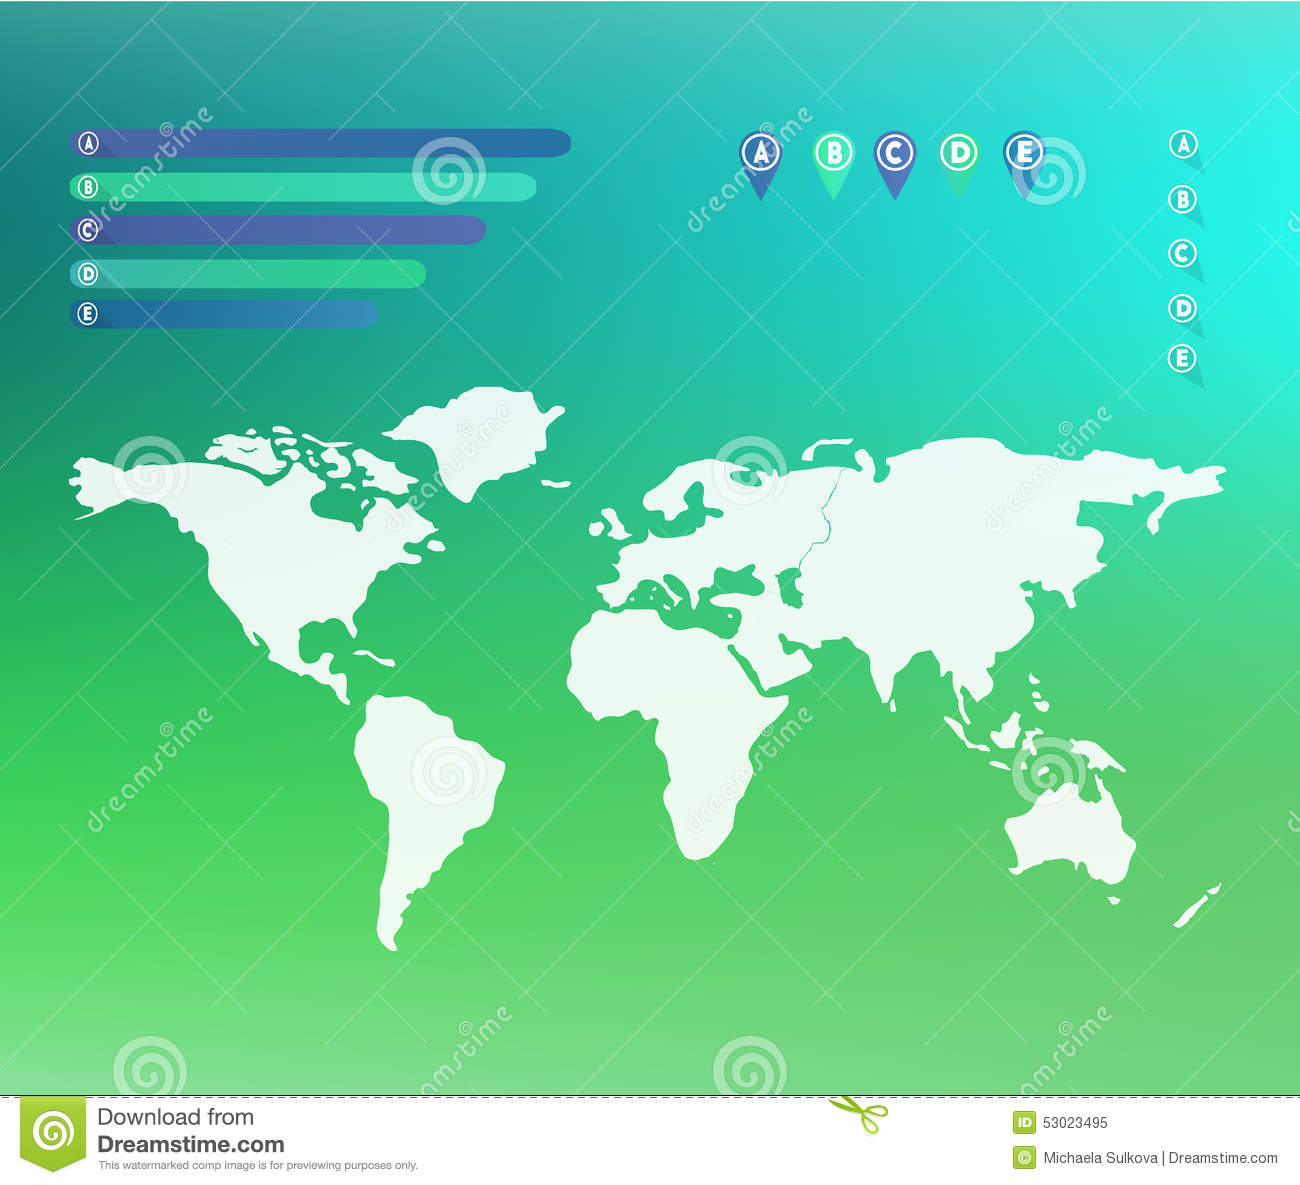 World map illustration on blurred green and blue background mesh world map illustration on blurred green and blue background mesh suitable for infographic gumiabroncs Image collections